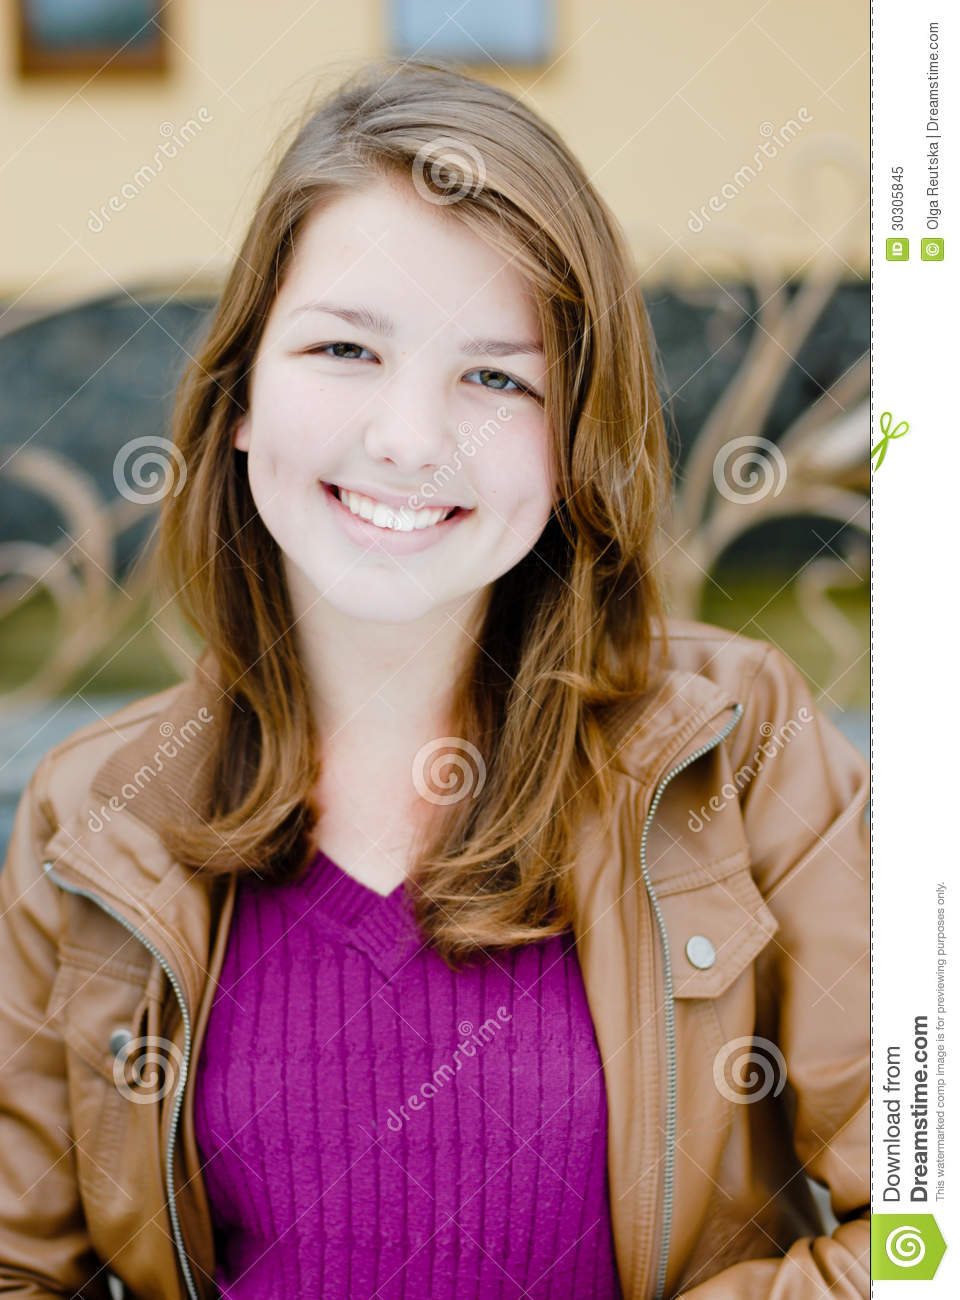 Outdoors portrait of beautiful young teen brunette girl happy smiling